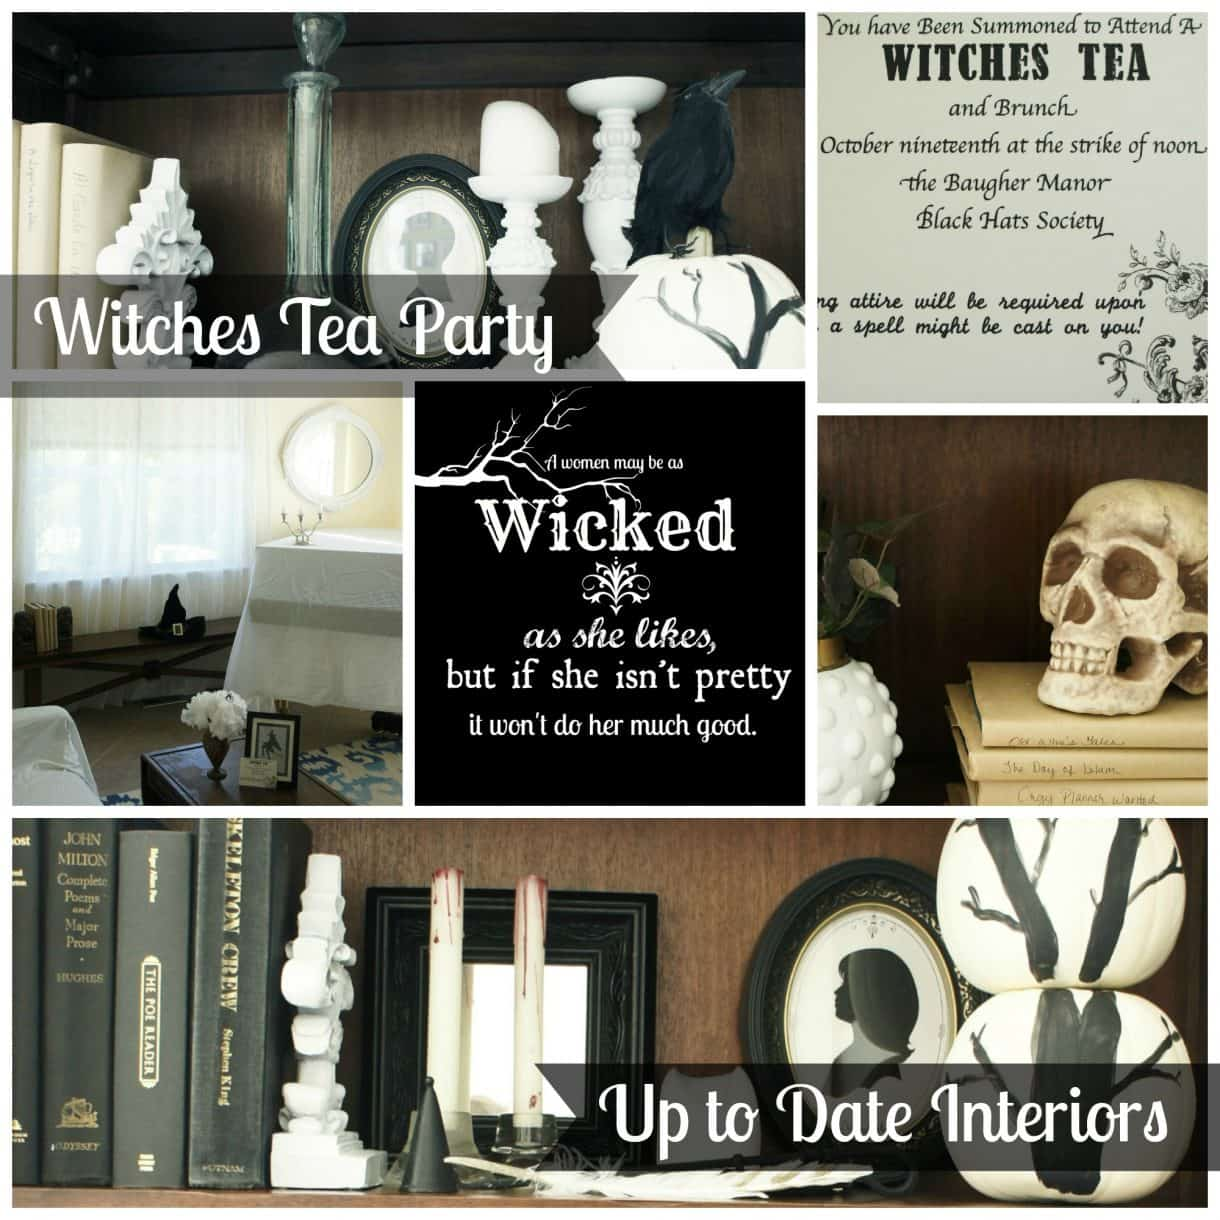 Witches Tea Party Decor And Invitation Inspiration